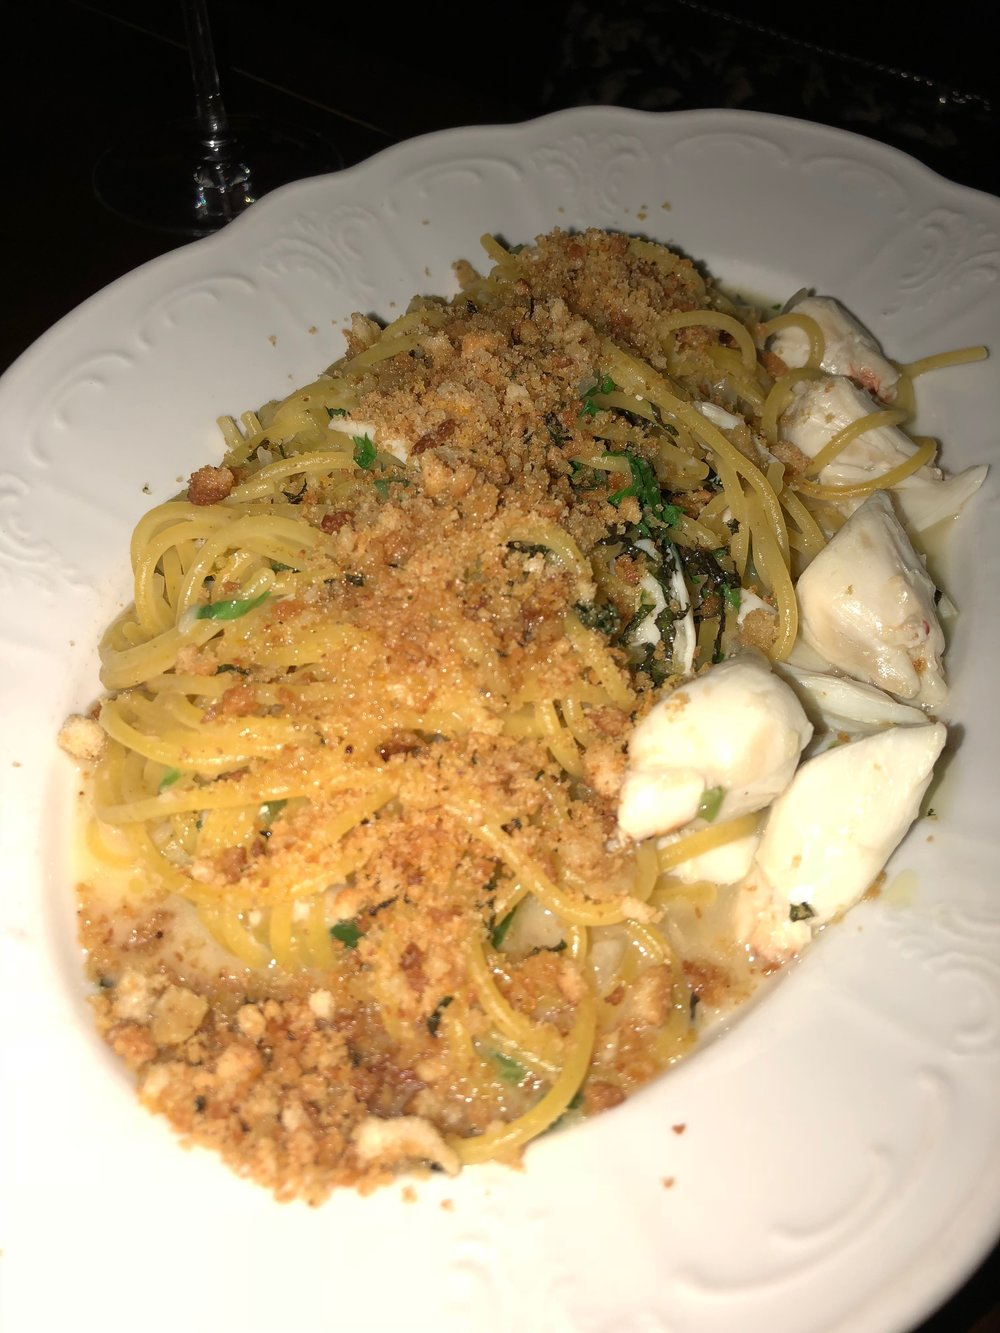 This is the Saffron Spaghetti I ordered at The Angeline Restaurant! So delicious!